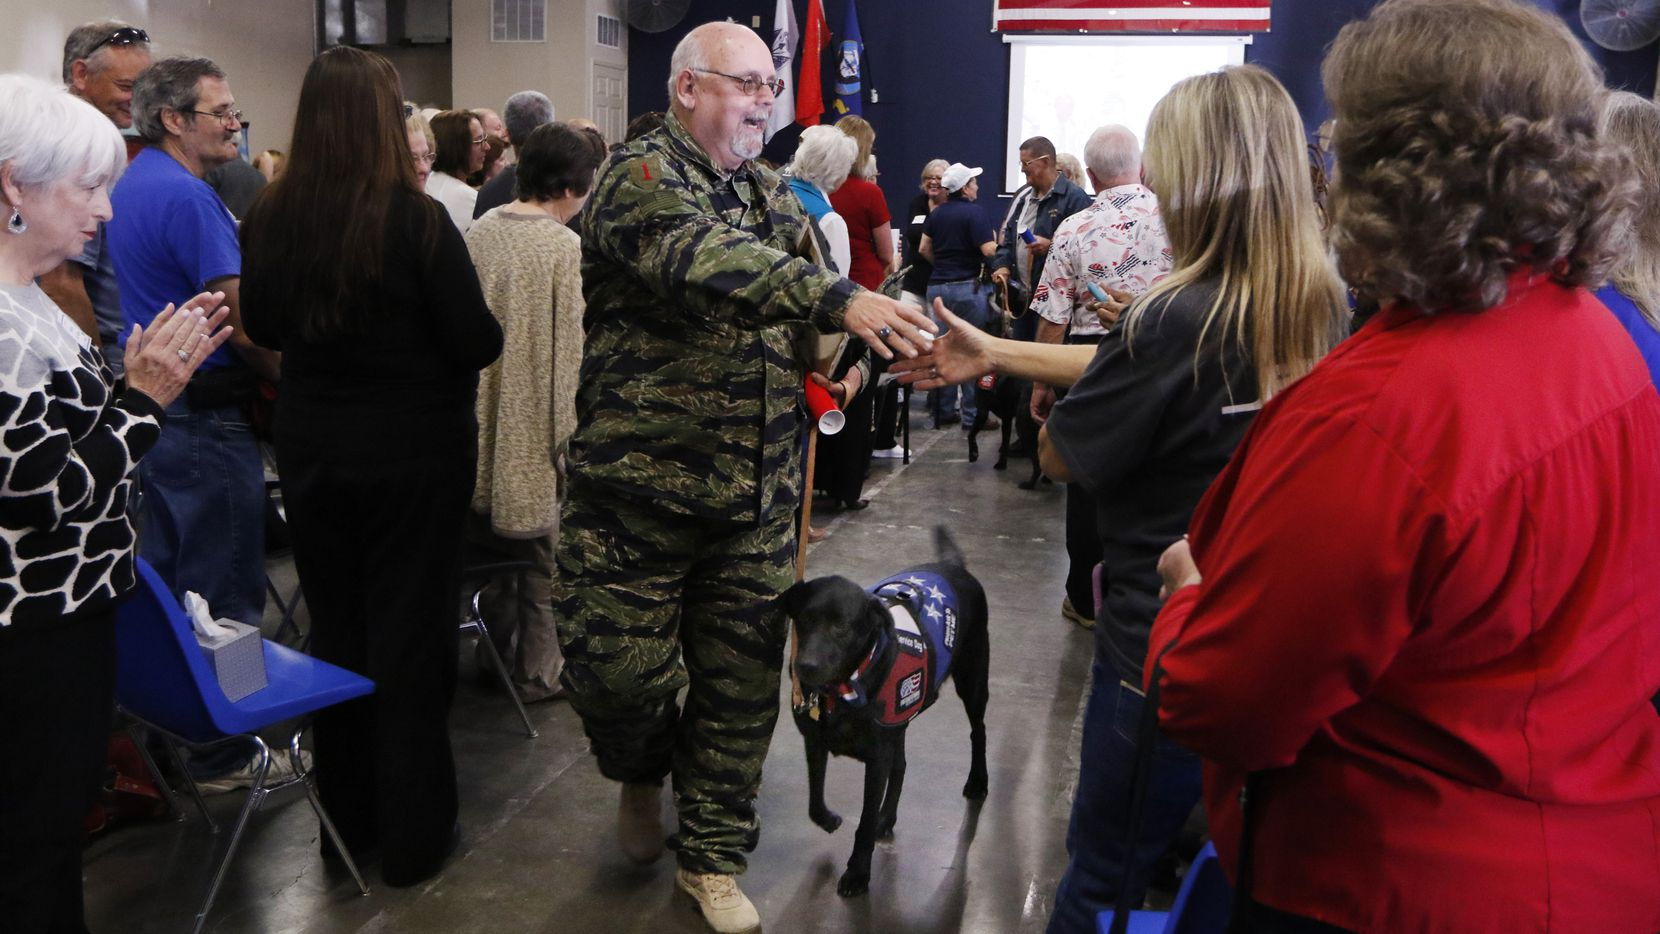 Jay Springstead, U.S. Army 1st Ltd. and his new service dog, Tex, greets people after he and four other veterans received service dogs from ParriotPAWS Service Dogs on Friday, November 11, 2016 in Rockwall, Texas. Parriot PAWS Service Dogs have placed 120 dogs over ten years. (David Woo/The Dallas Morning News)